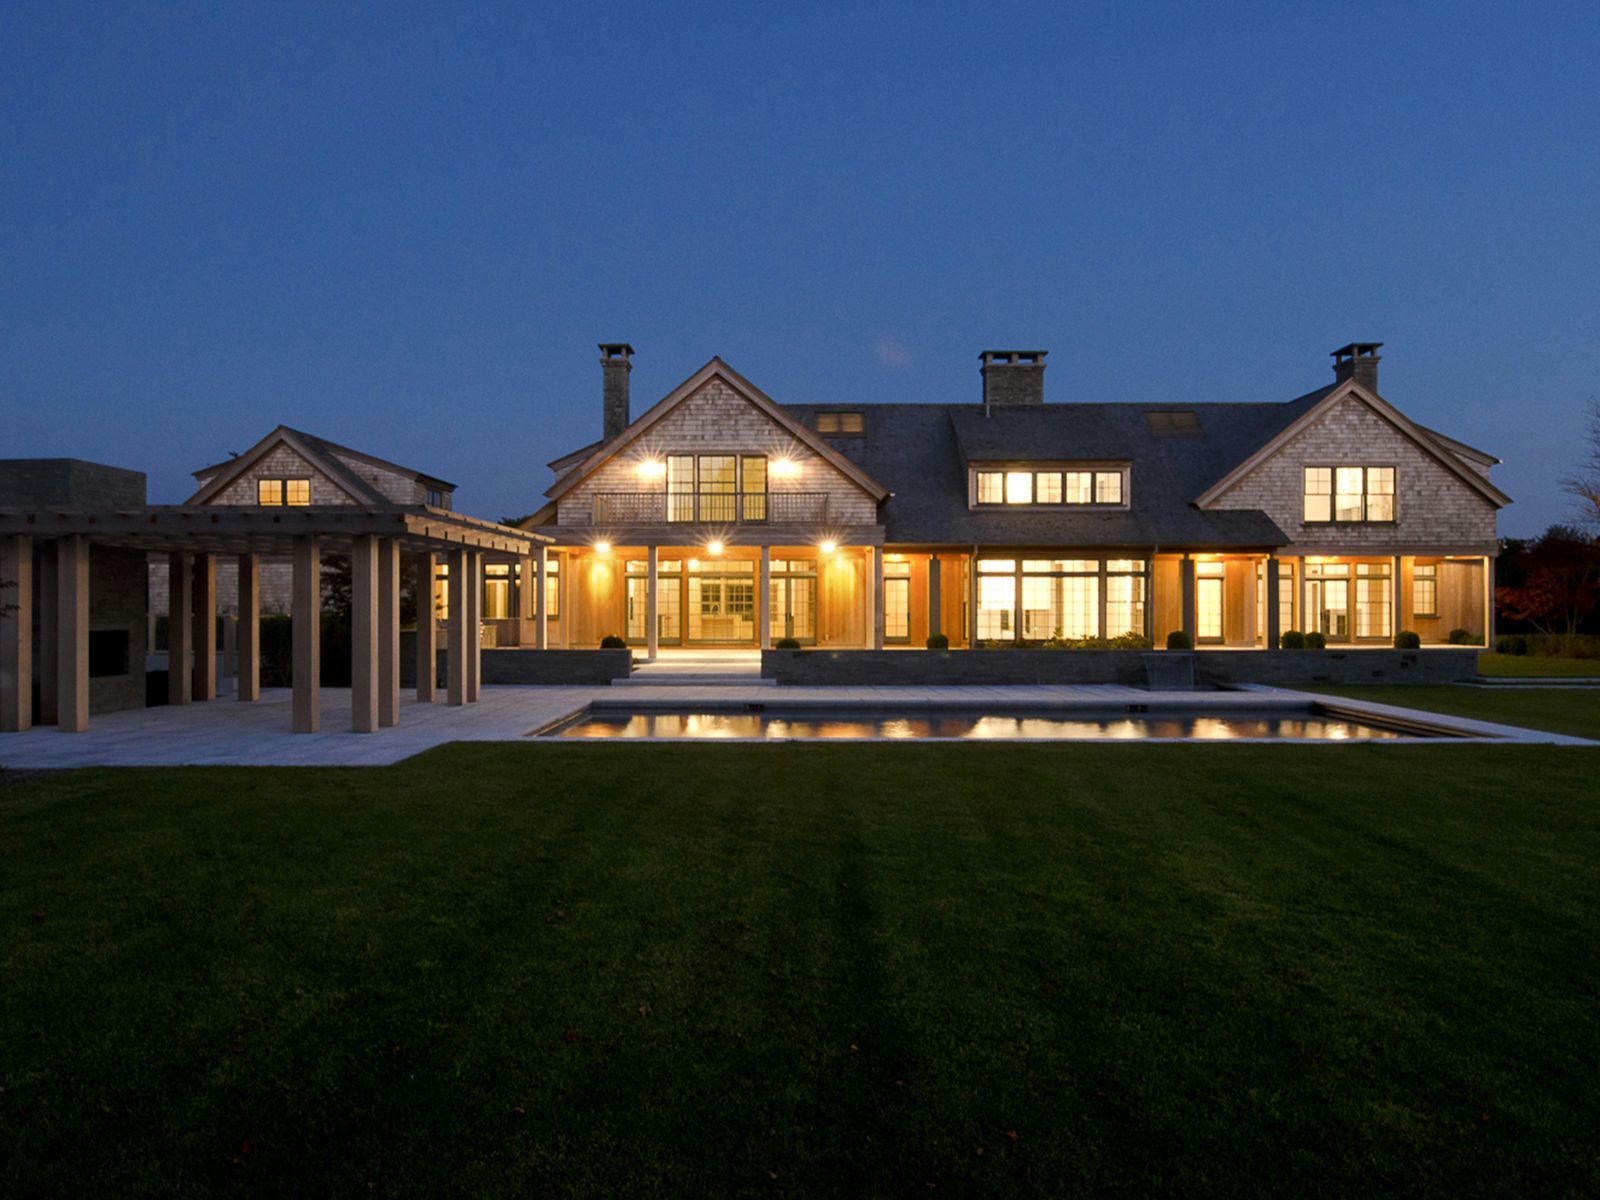 Newly Constructed Exquisite Manor Home, Water Mill NY Single Family Home - Hamptons Real Estate